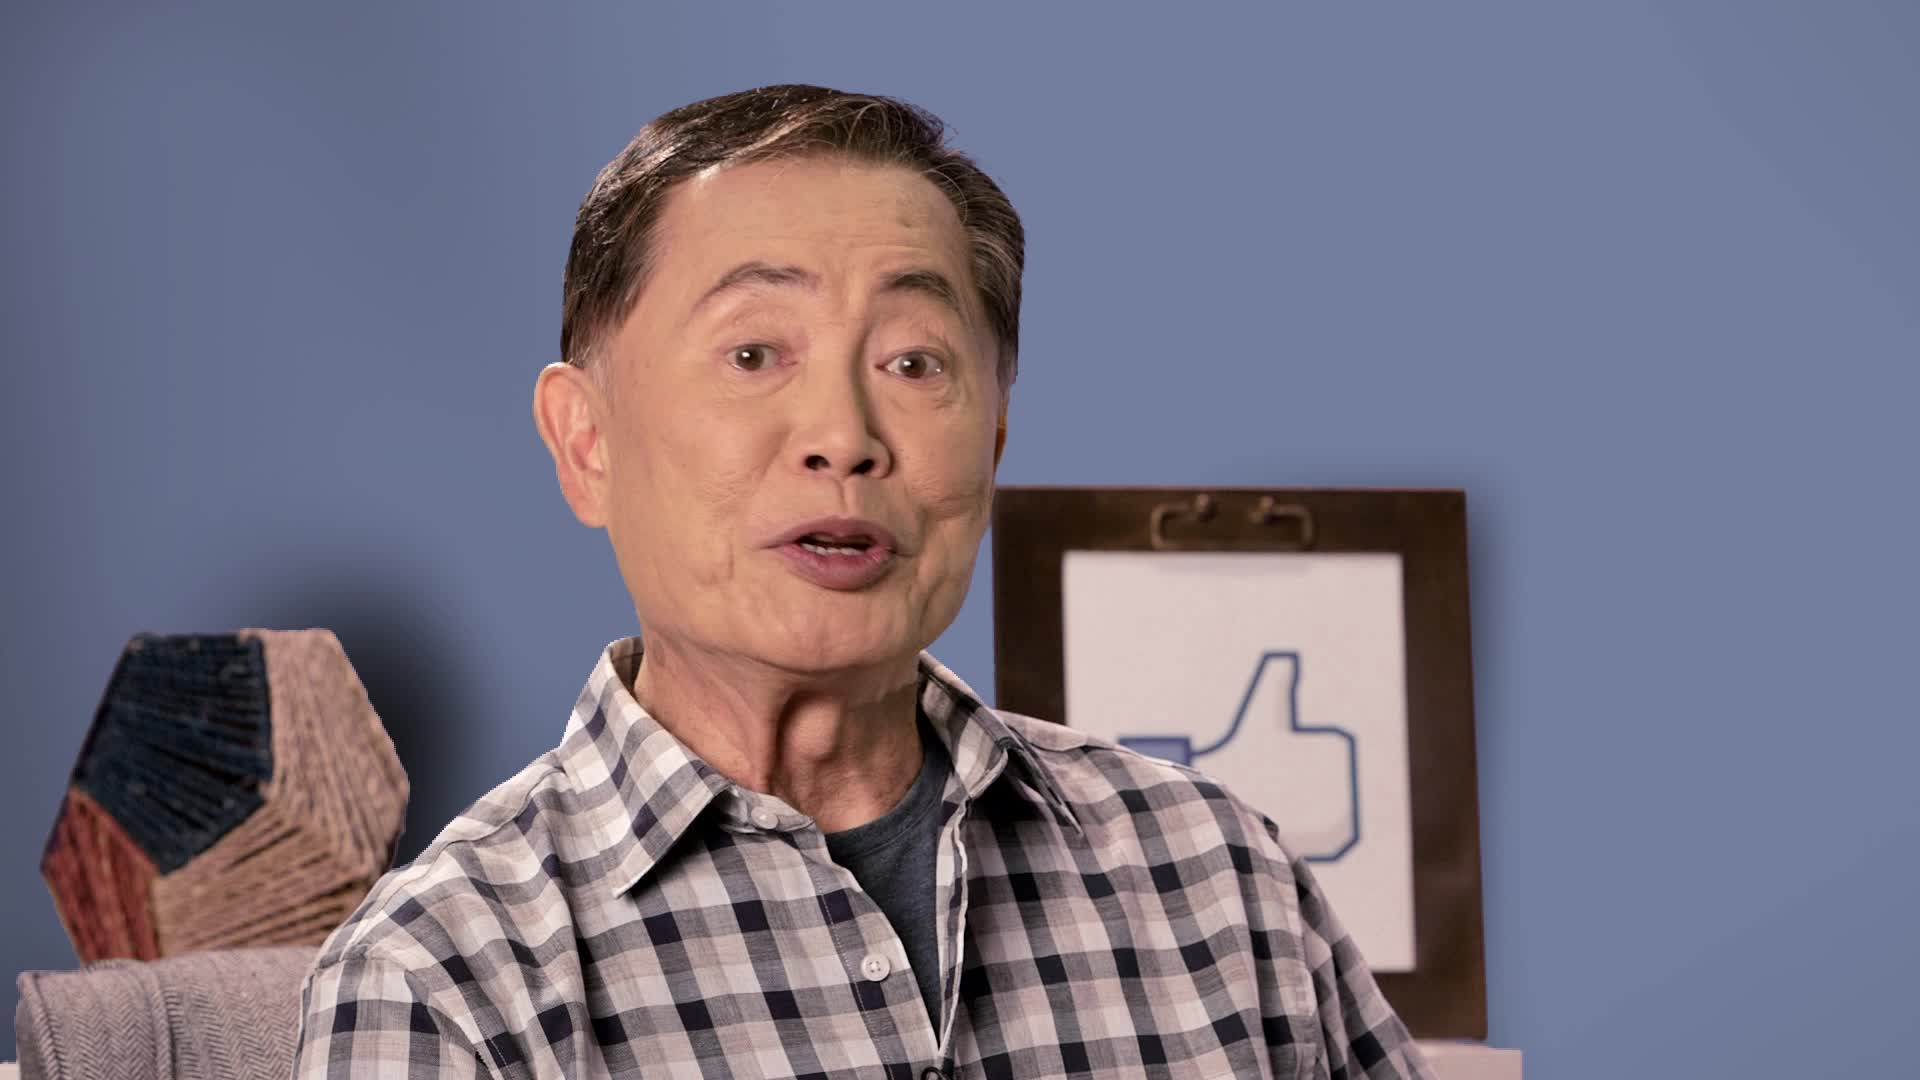 People's Voice - George Takei and Lamarr Wilson Explore Google Glass | Episode 1